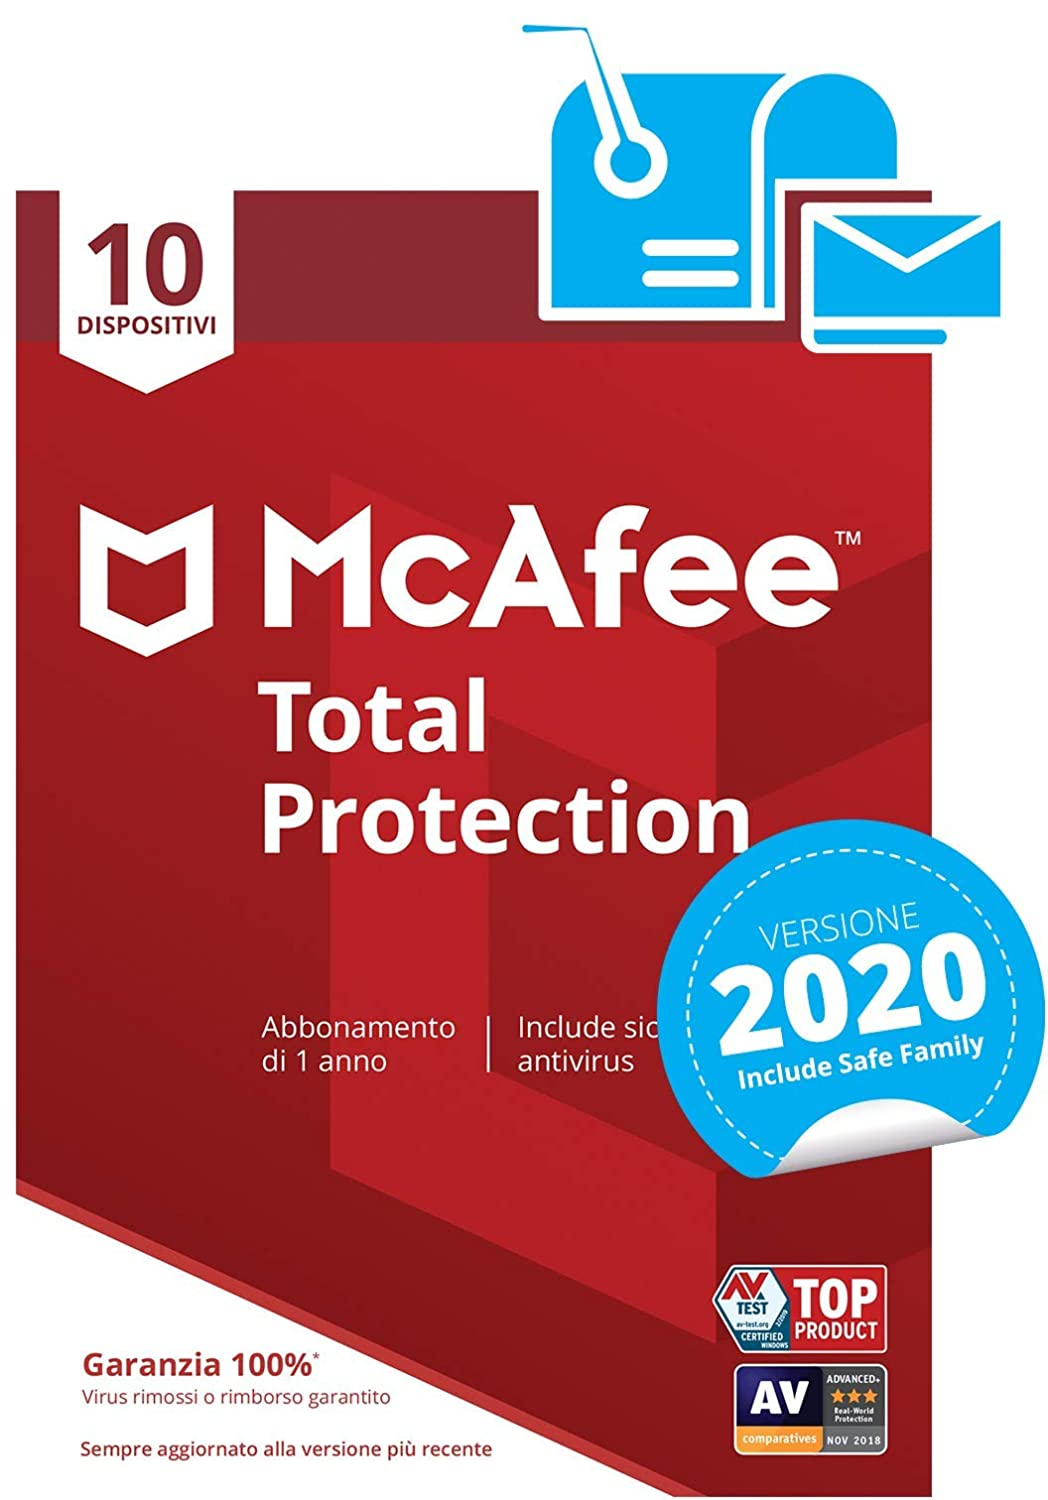 McAfee Total Protection 2020 | 10 Dispositivi | Abbonamento di 1 anno | PC/Mac/Smartphone/Tablet | Codice di attivazione via mail